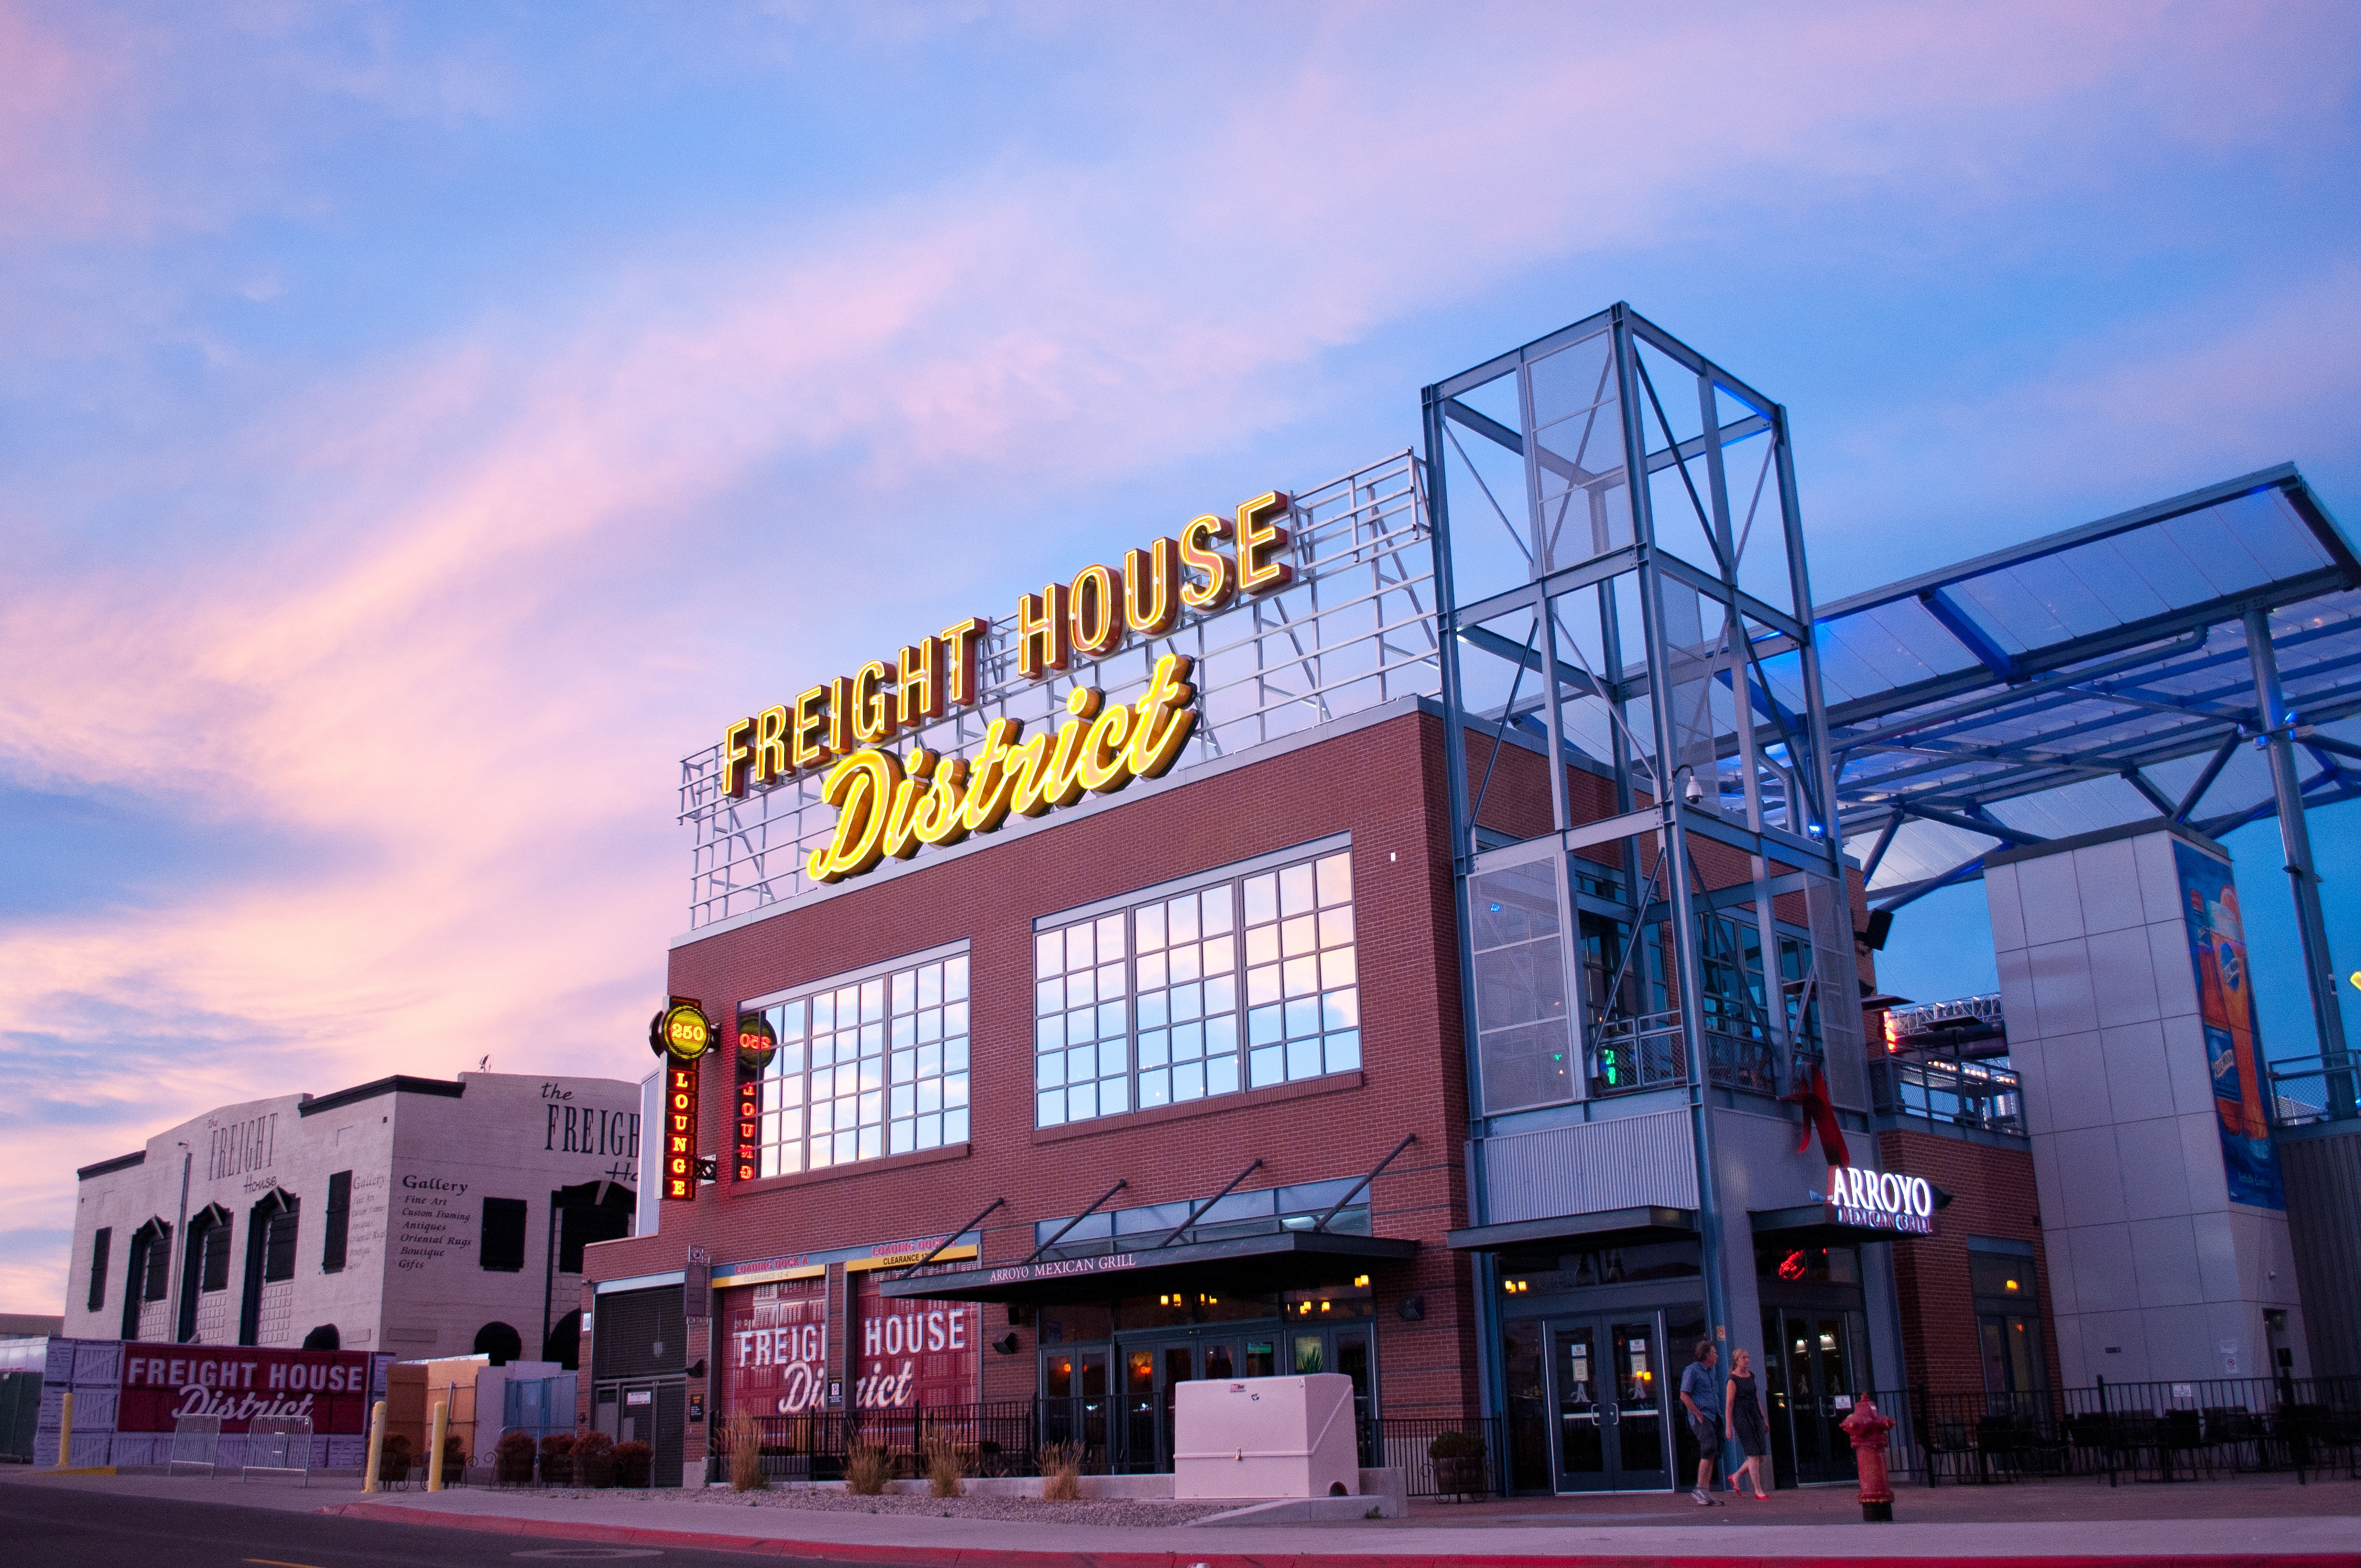 Freight House District in Reno